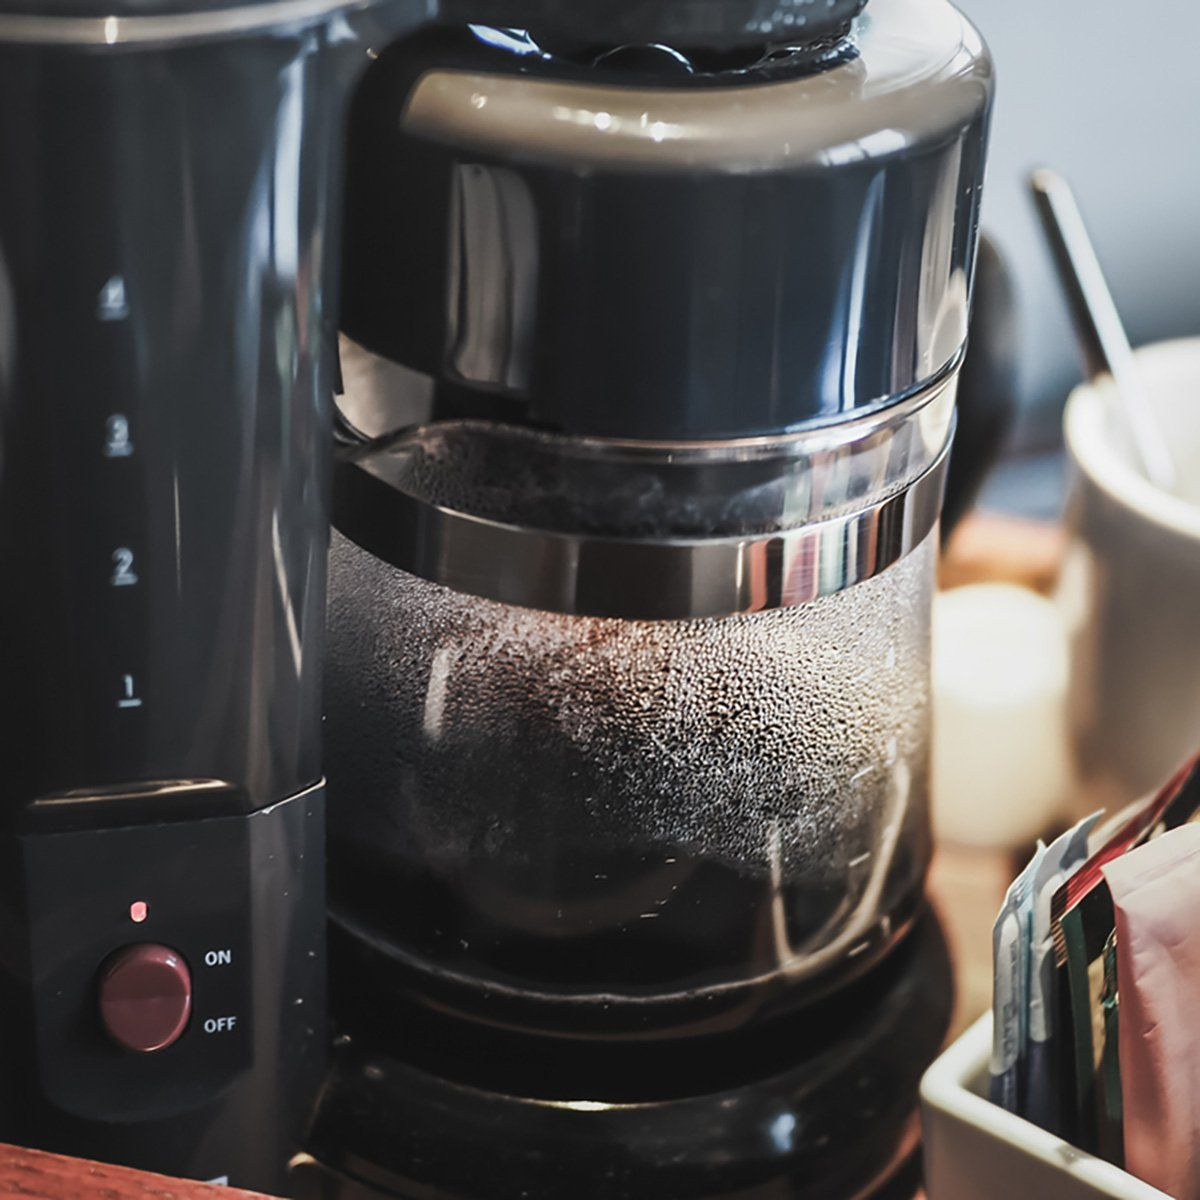 12 common mistakes everyone makes when brewing coffee